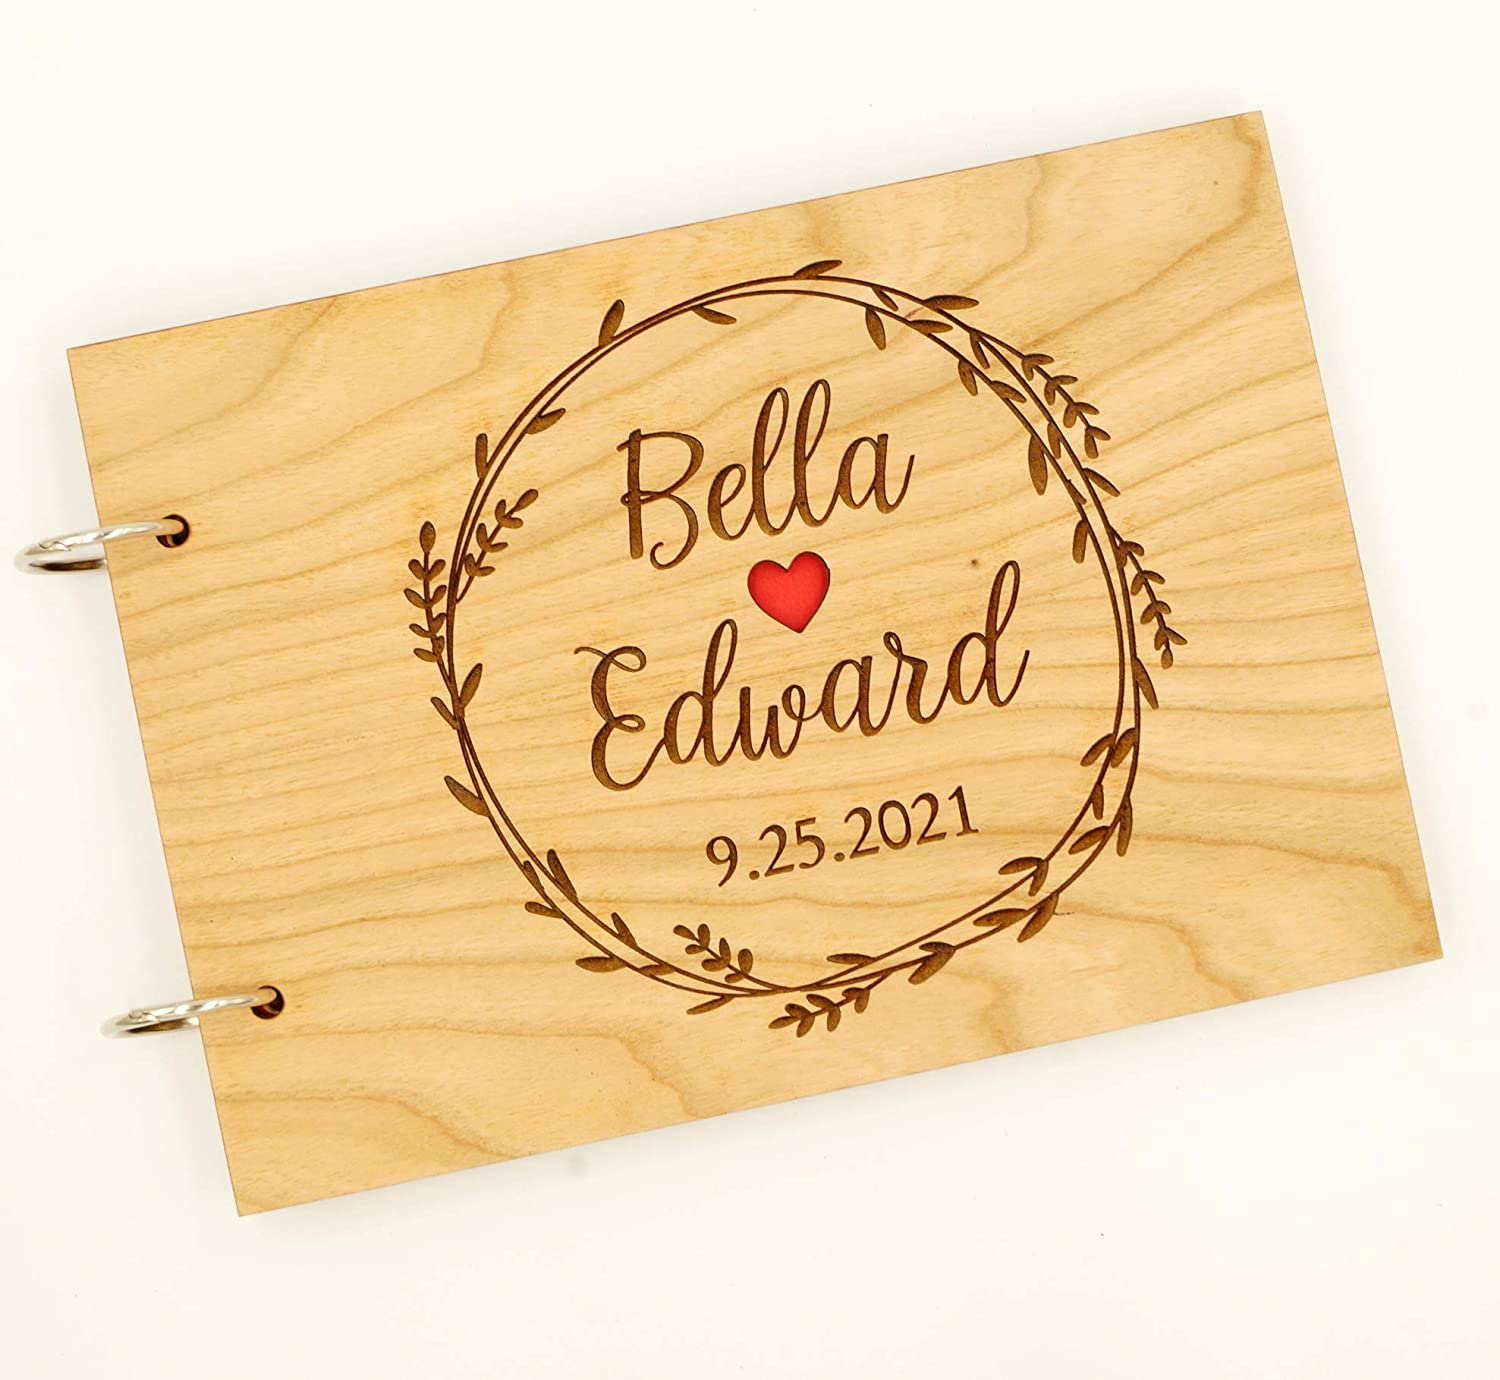 Wood Rustic Wedding Guest Book Laser Engraved Names Bride and Groom GB16 Custom Wedding Guest Book Personalized Wedding Guestbook Album